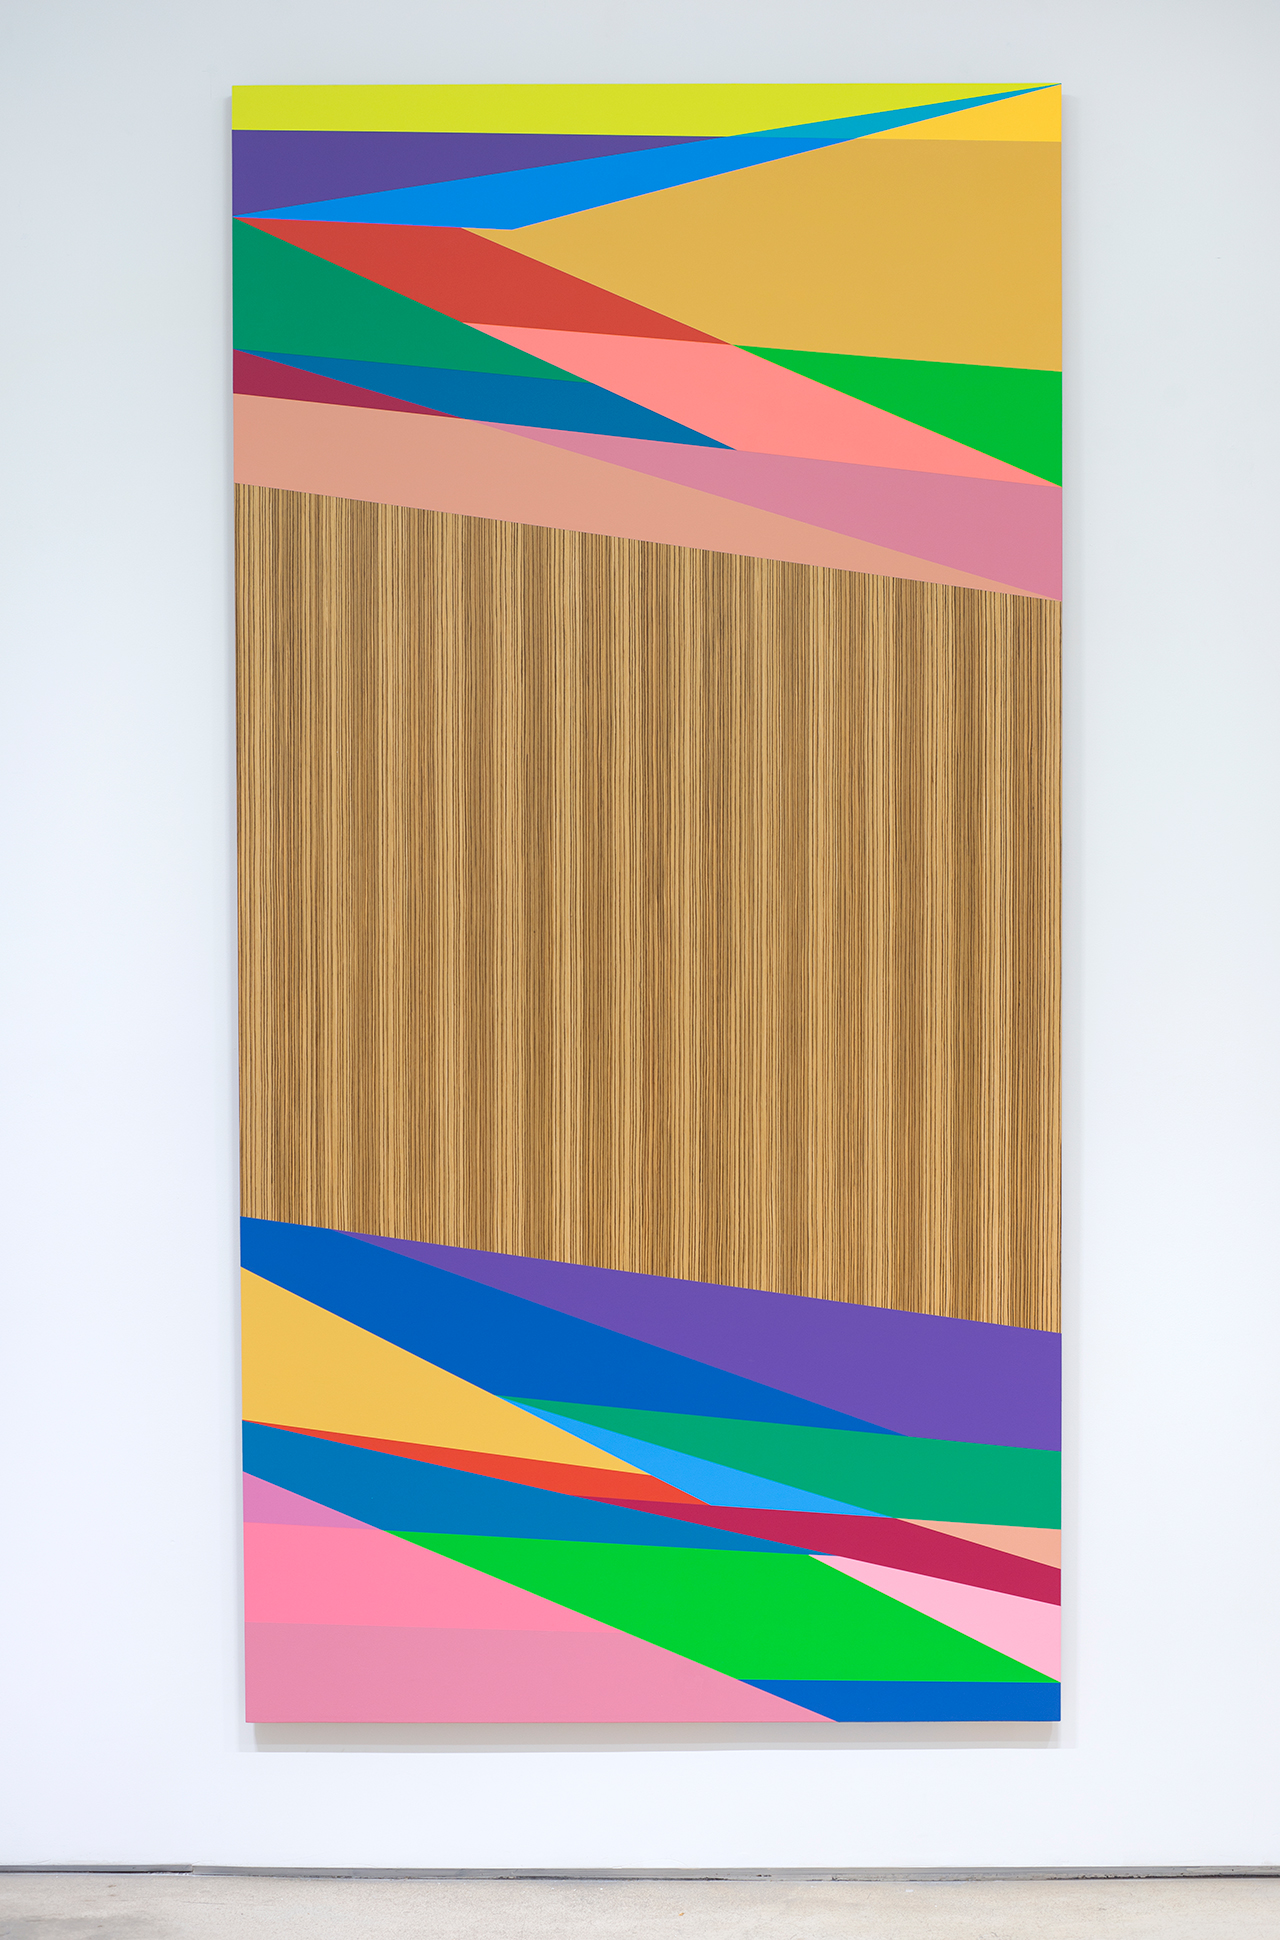 Odili Donald Odita, Distant Relative, 2015, acrylic latex on panel, 96 x 48 inch